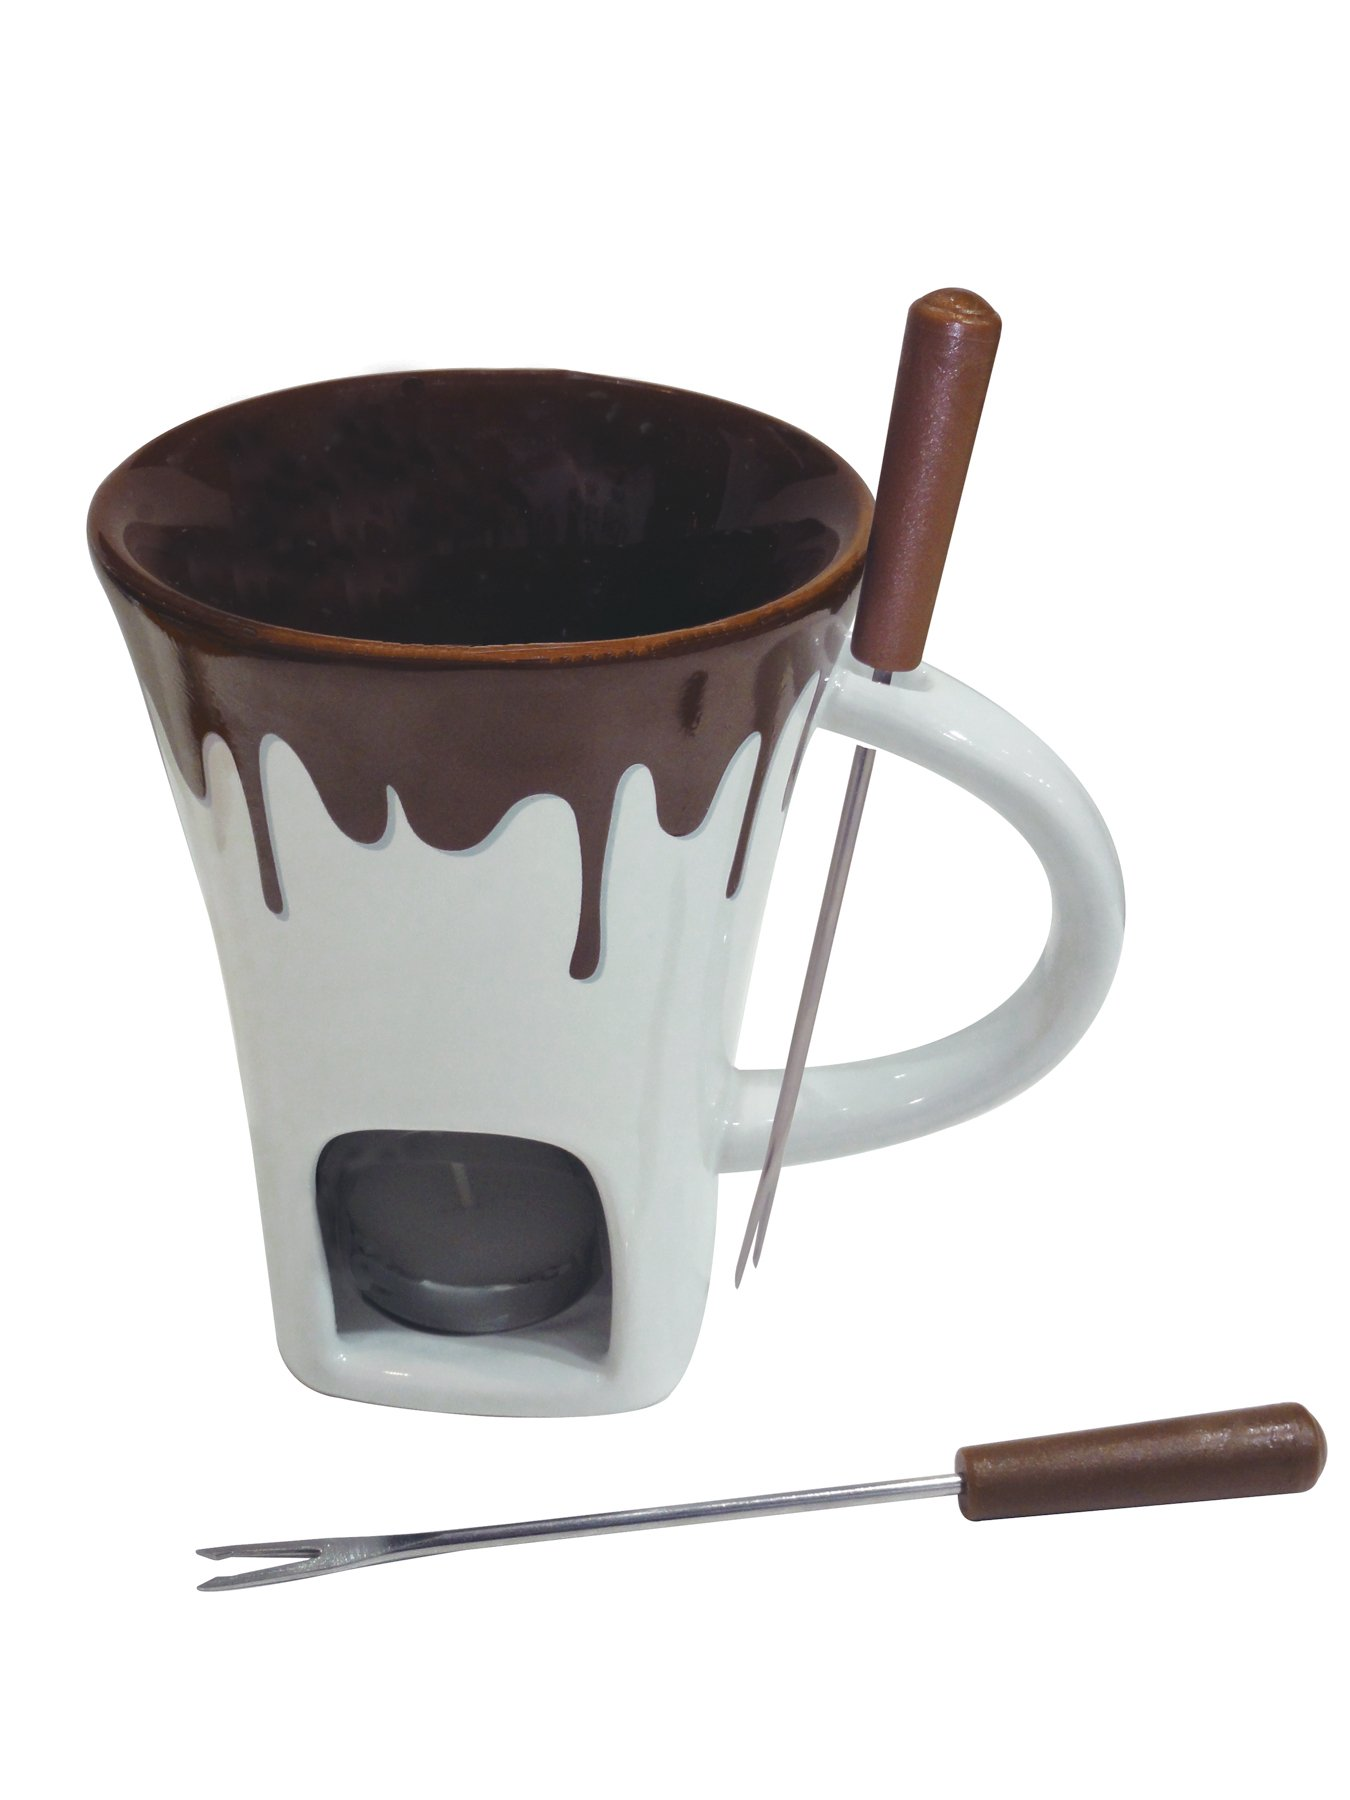 Swissmar F12064 4-Piece Nostalgia Chocolate Fondue Mug Set by Swissmar